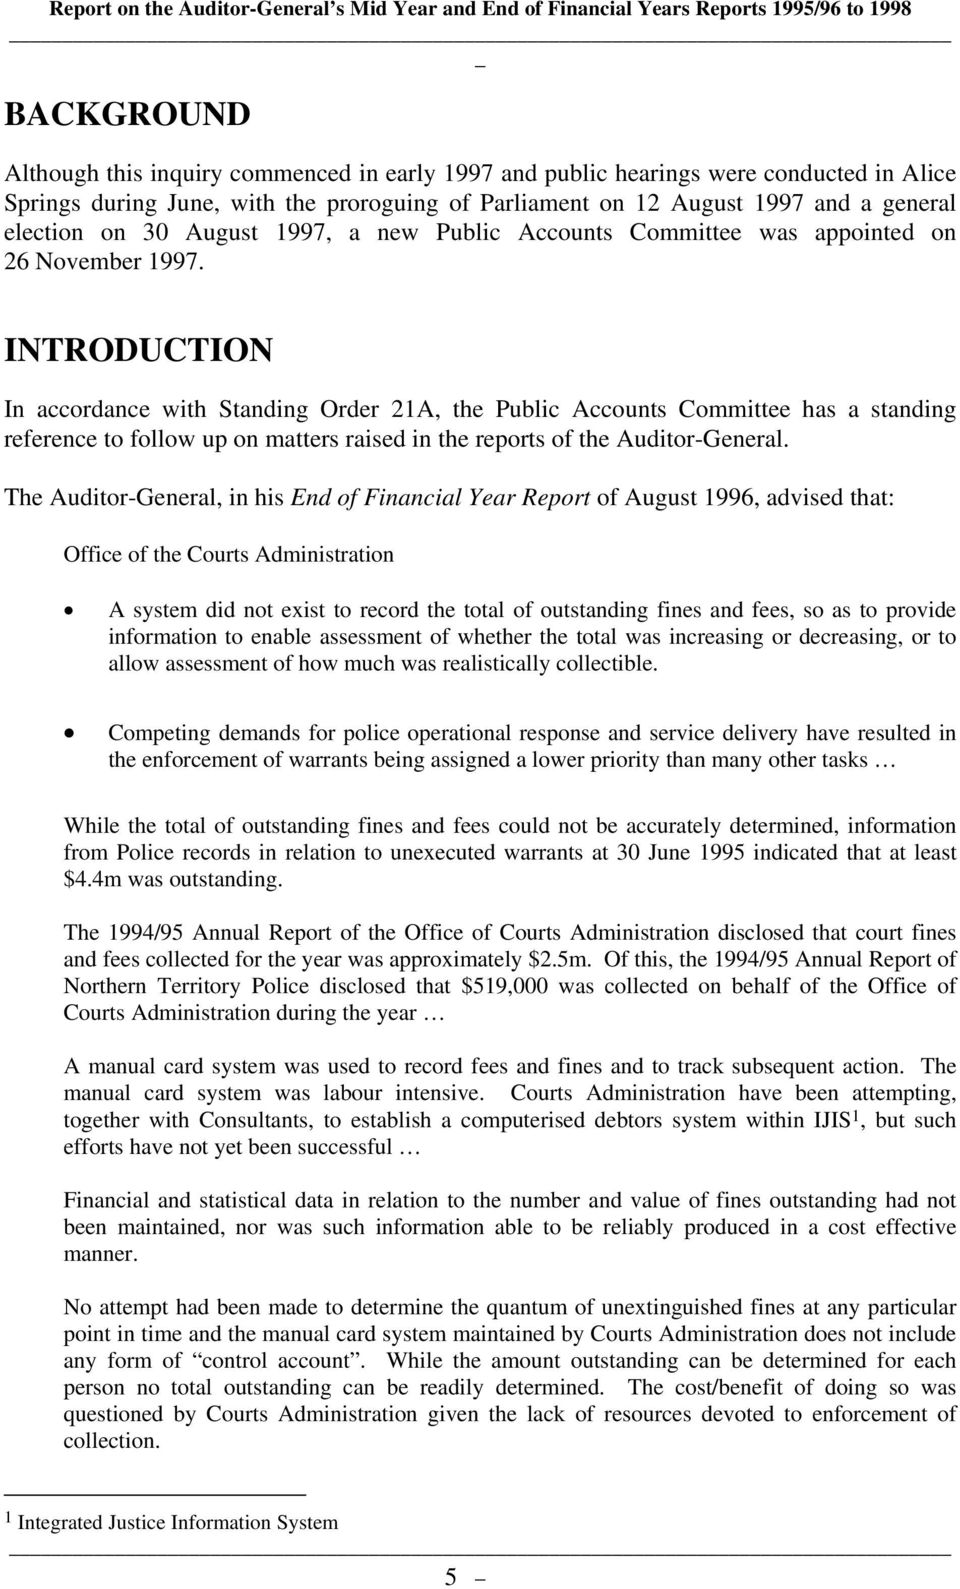 INTRODUCTION In accordance with Standing Order 21A, the Public Accounts Committee has a standing reference to follow up on matters raised in the reports of the Auditor-General.